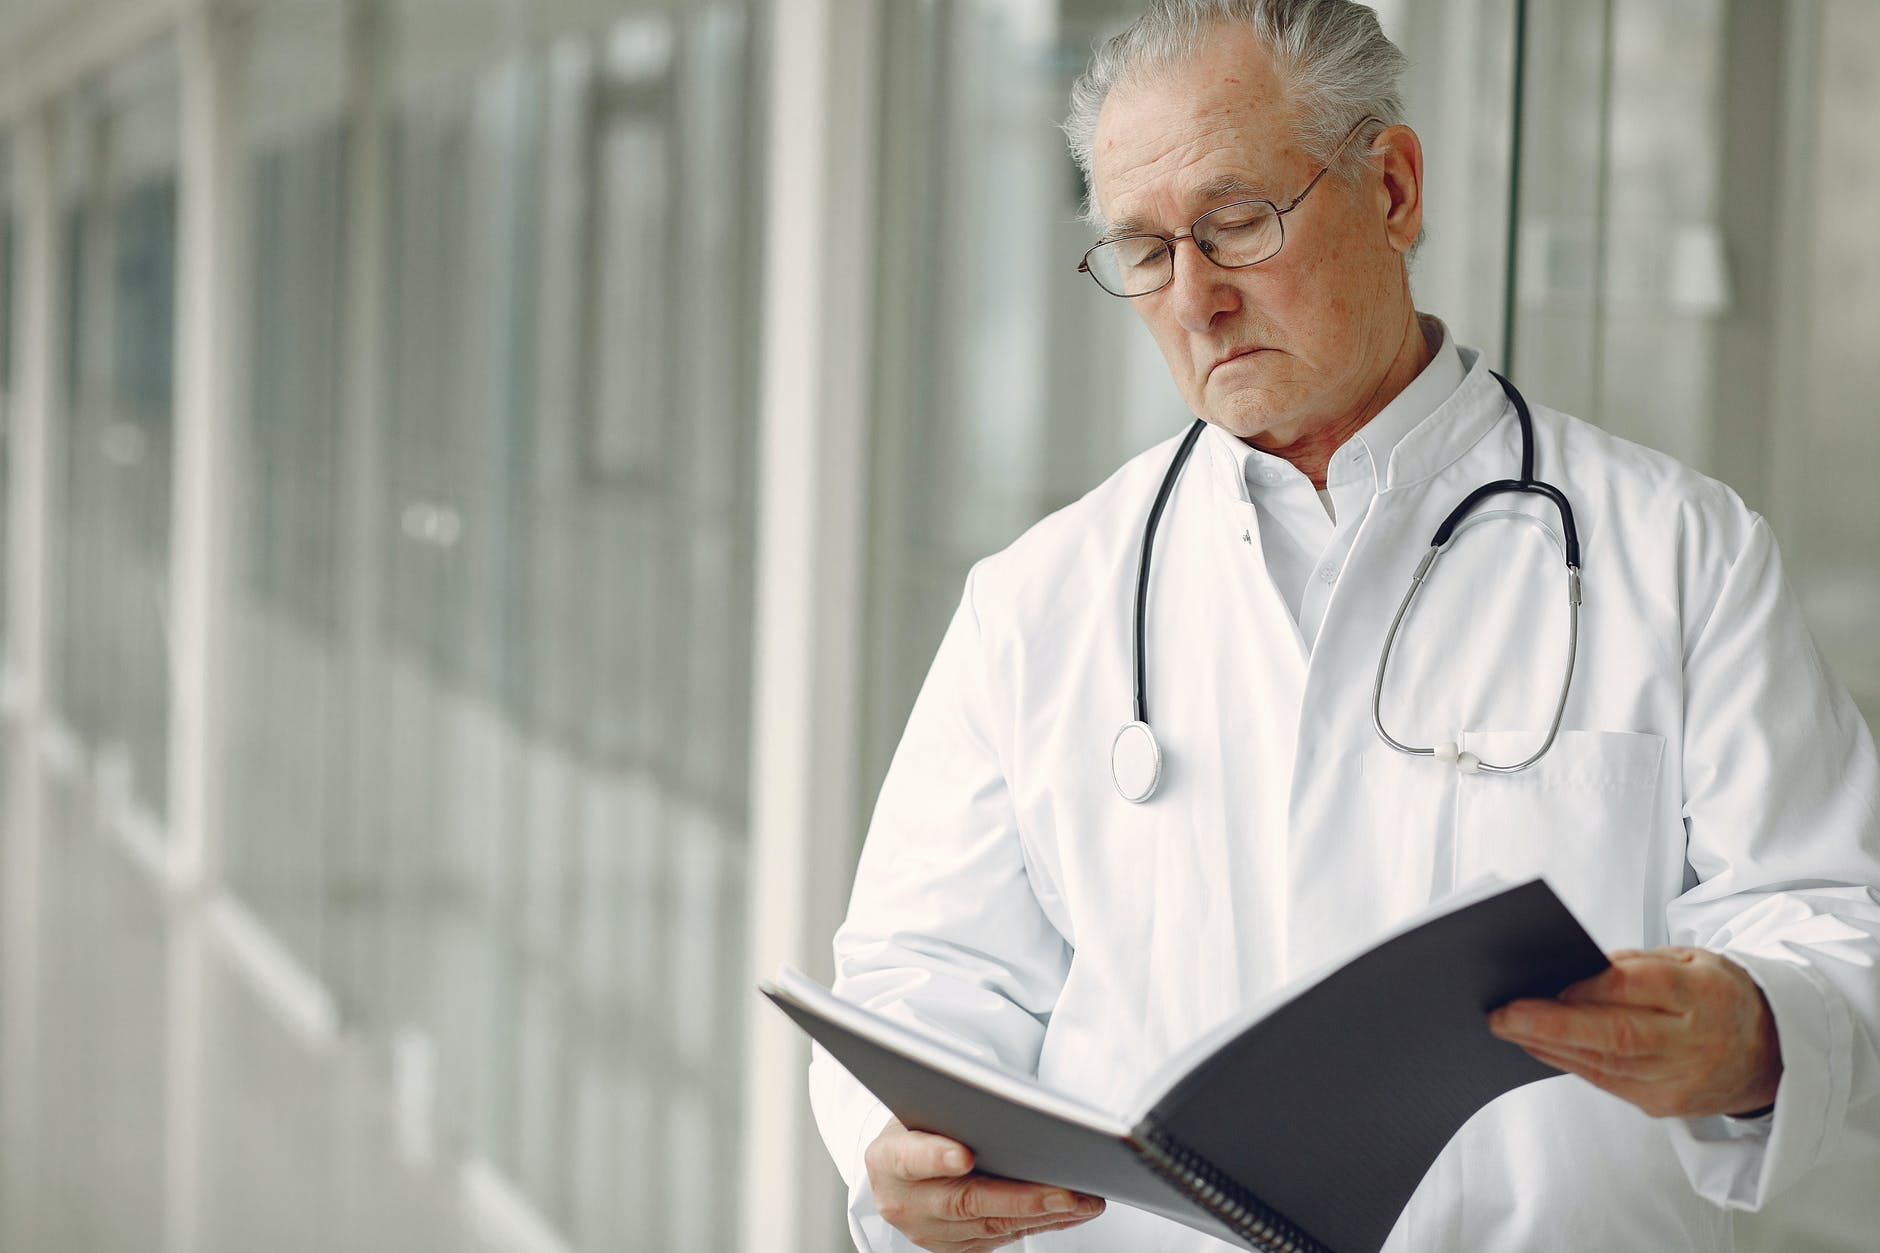 Doctor looking at a folder | Source: Pexels